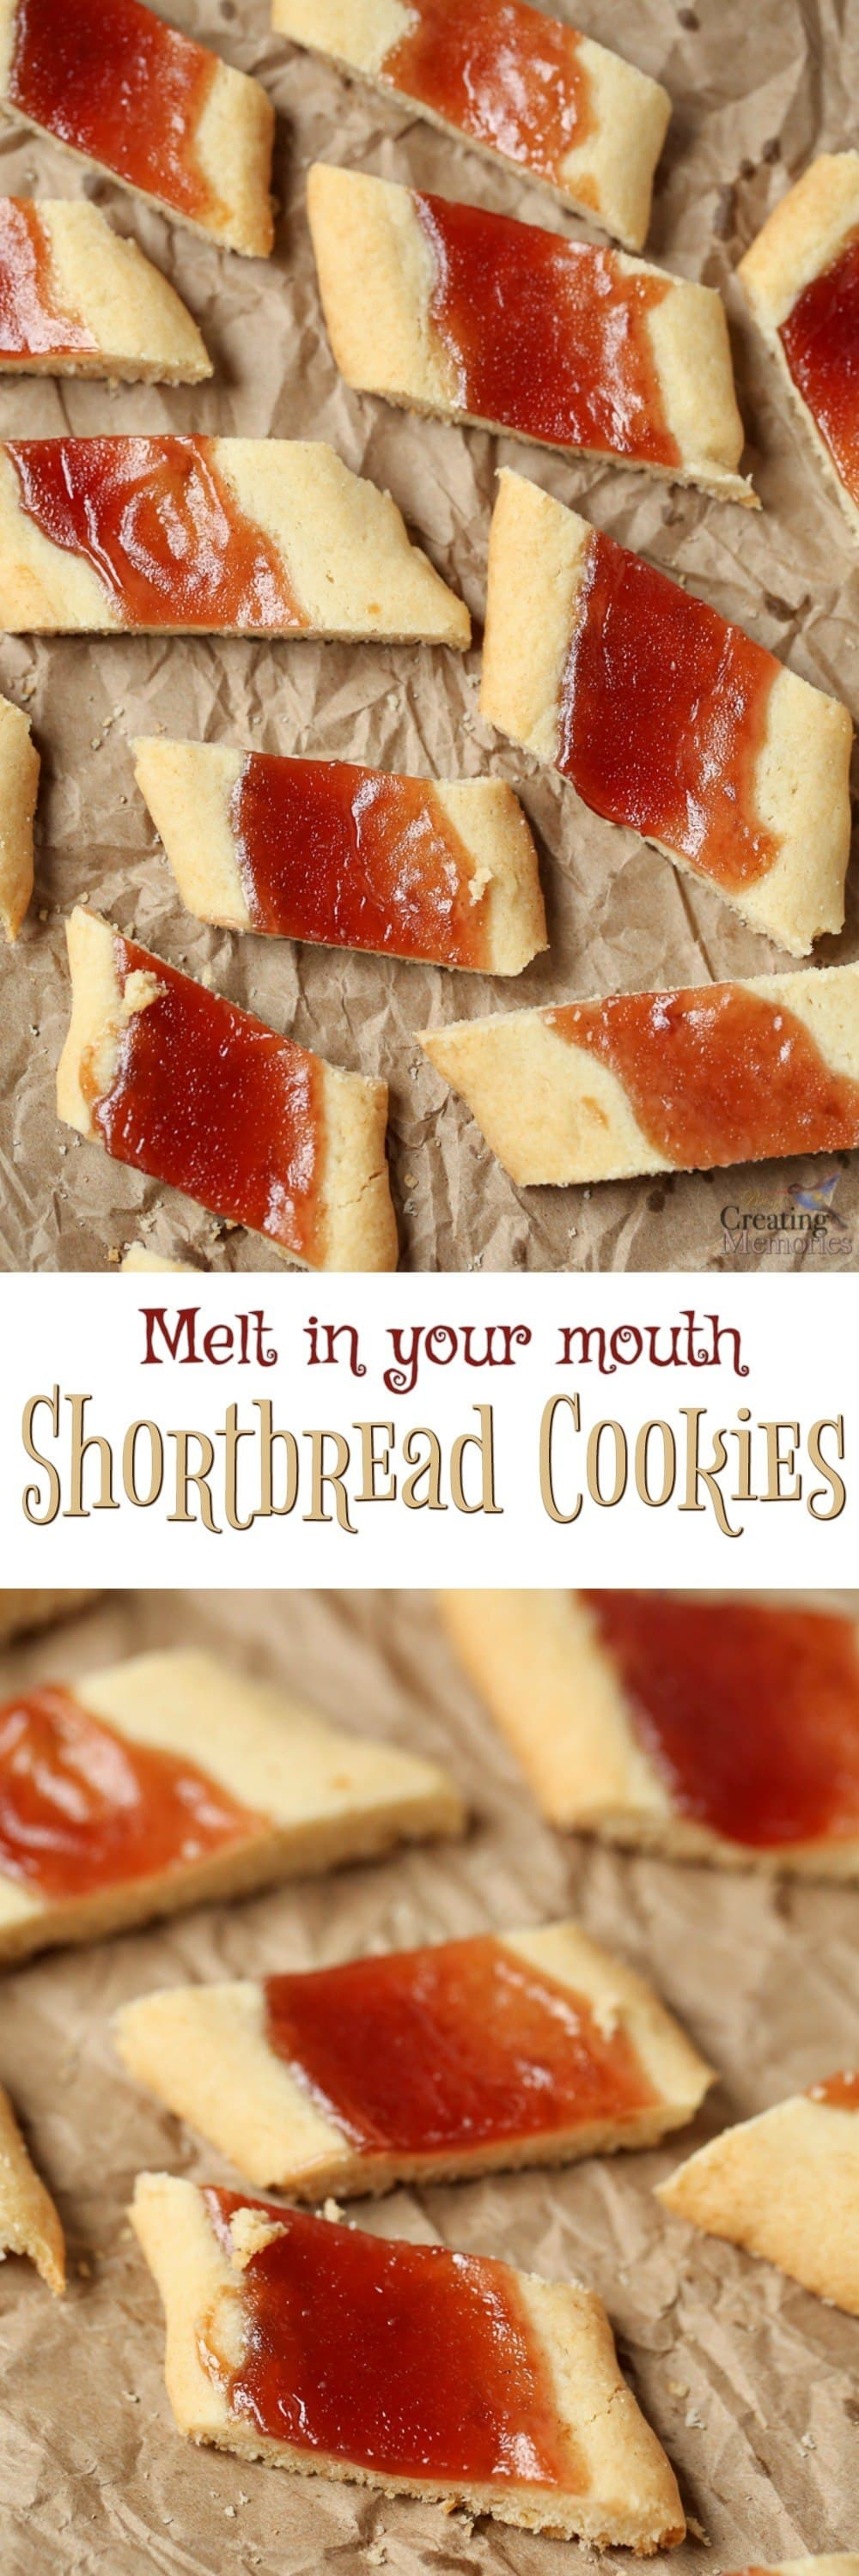 Melt in your mouth Shortbread Cookie logs with a buttery base, filled with your favorite jam preserve served up in bite-sized slices! The Perfect Christmas Cookies or for family gatherings, potlucks, cookie exchanges, or just the perfect thumbprint cookie!